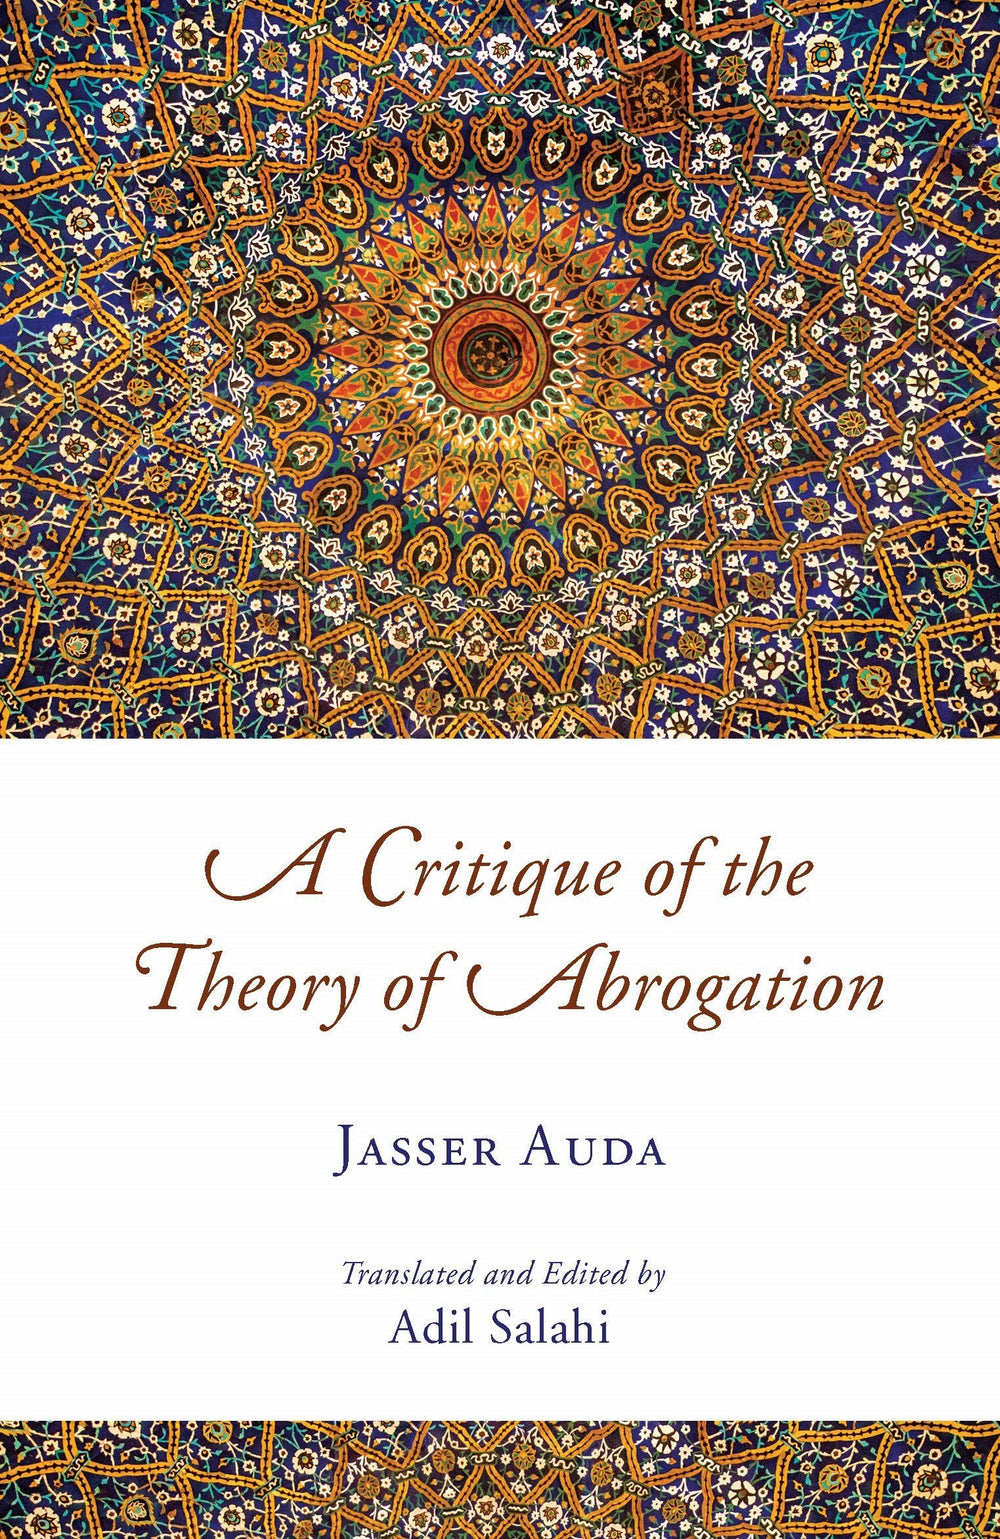 A Critique of the Theory of Abrogation